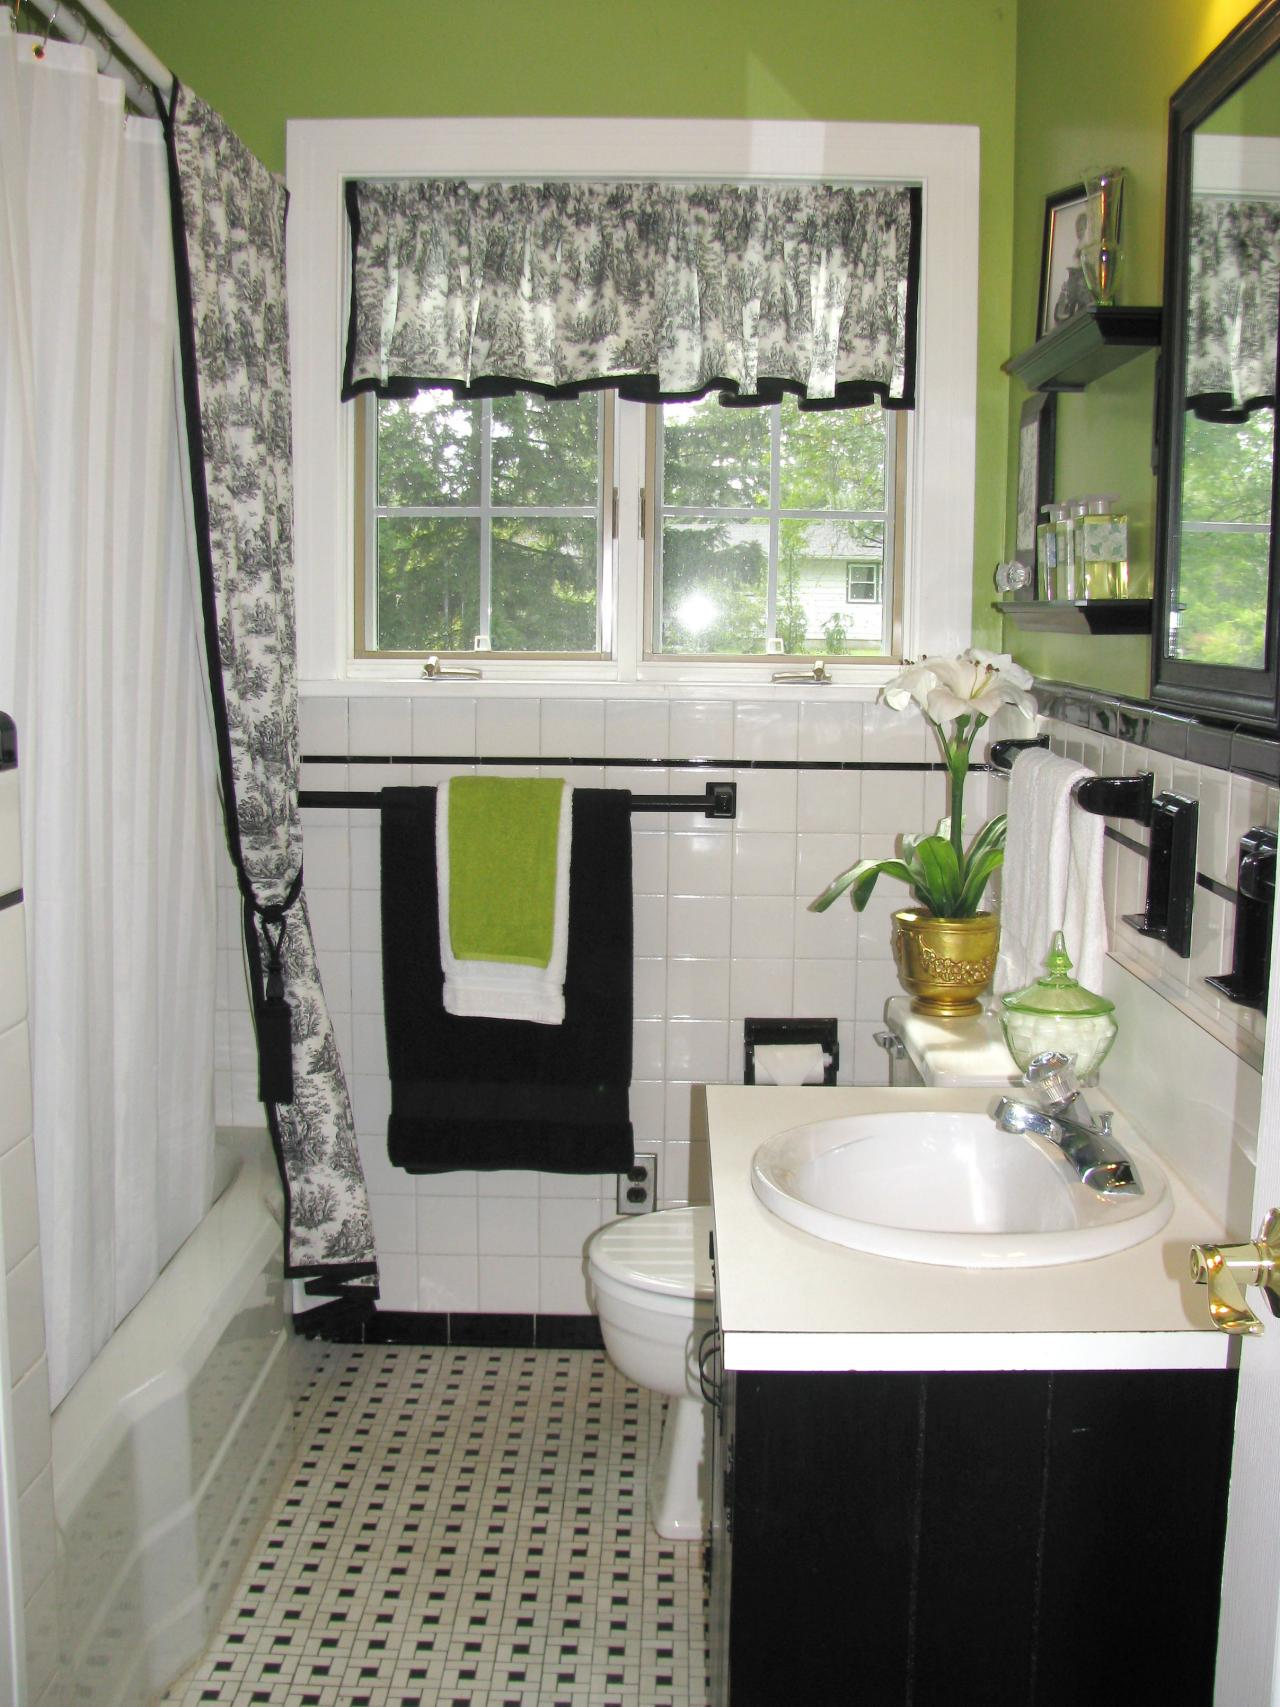 RMS_palmax-green-black-retro-bathroom_s3x4.jpg.rend.hgtvcom.1280.1707